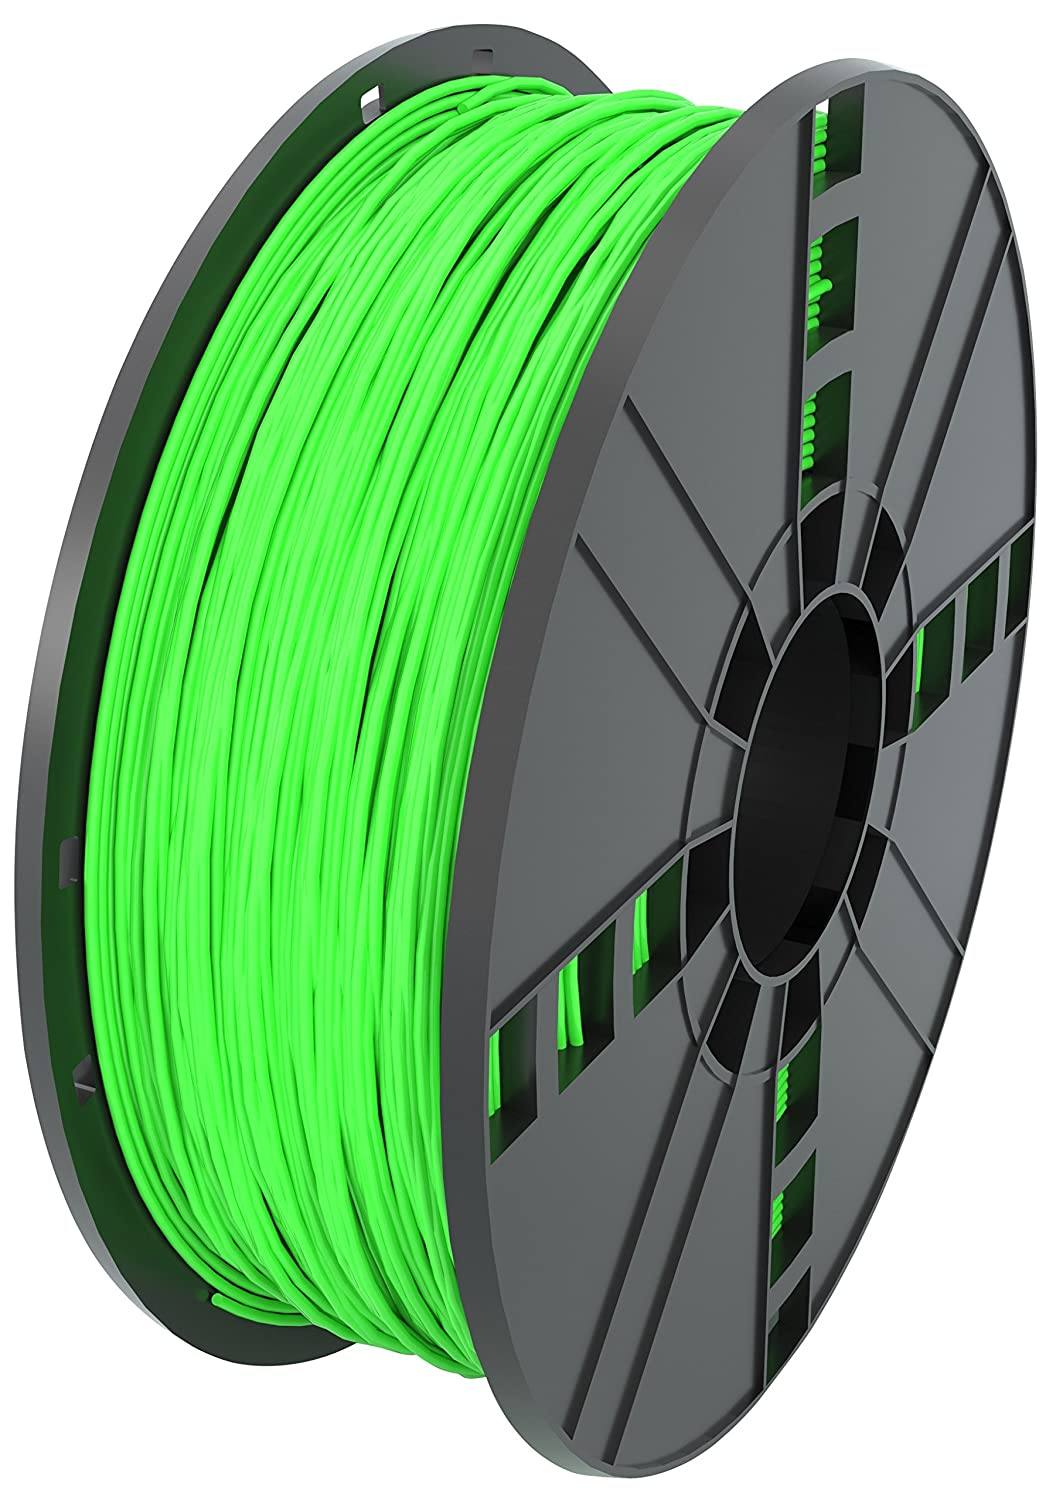 MG Chemicals ABS17GR1 Green ABS 3D Printer Filament, 1.75 mm, 1 kg Spool